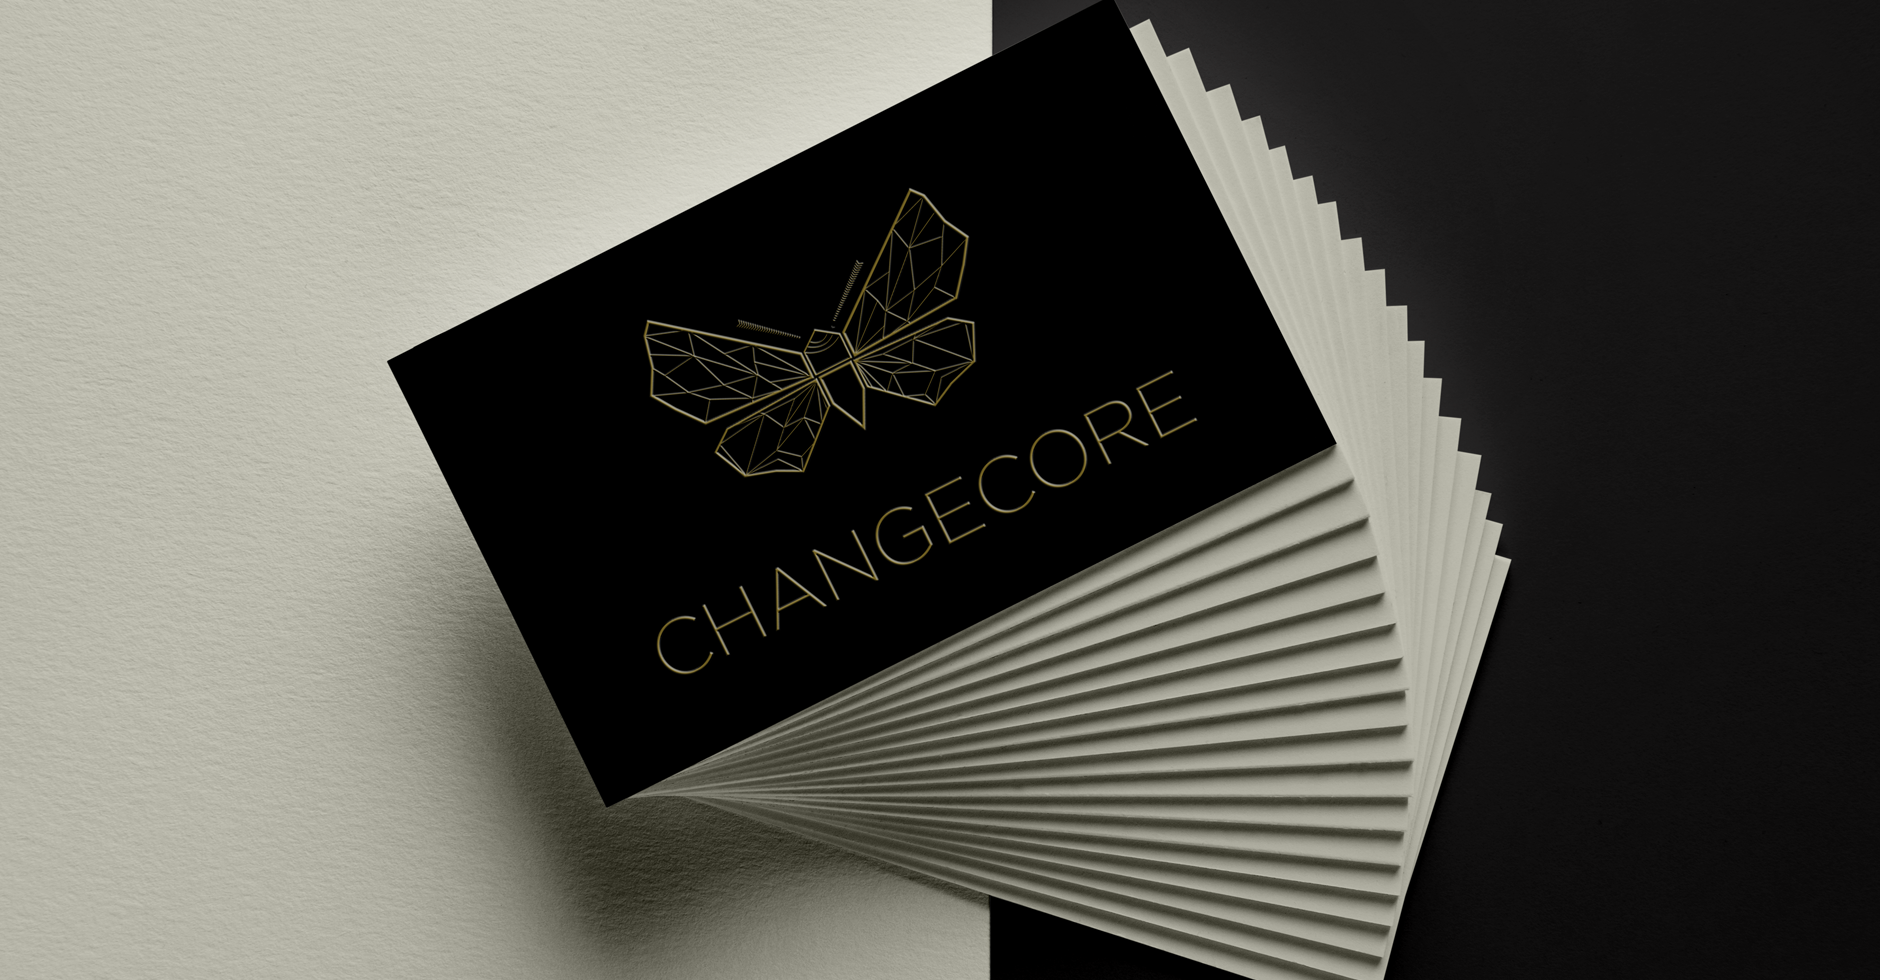 Case study changecore business consultants graphic design logo brand case study changecore business consultants graphic design logo brand identity business cards reheart Image collections